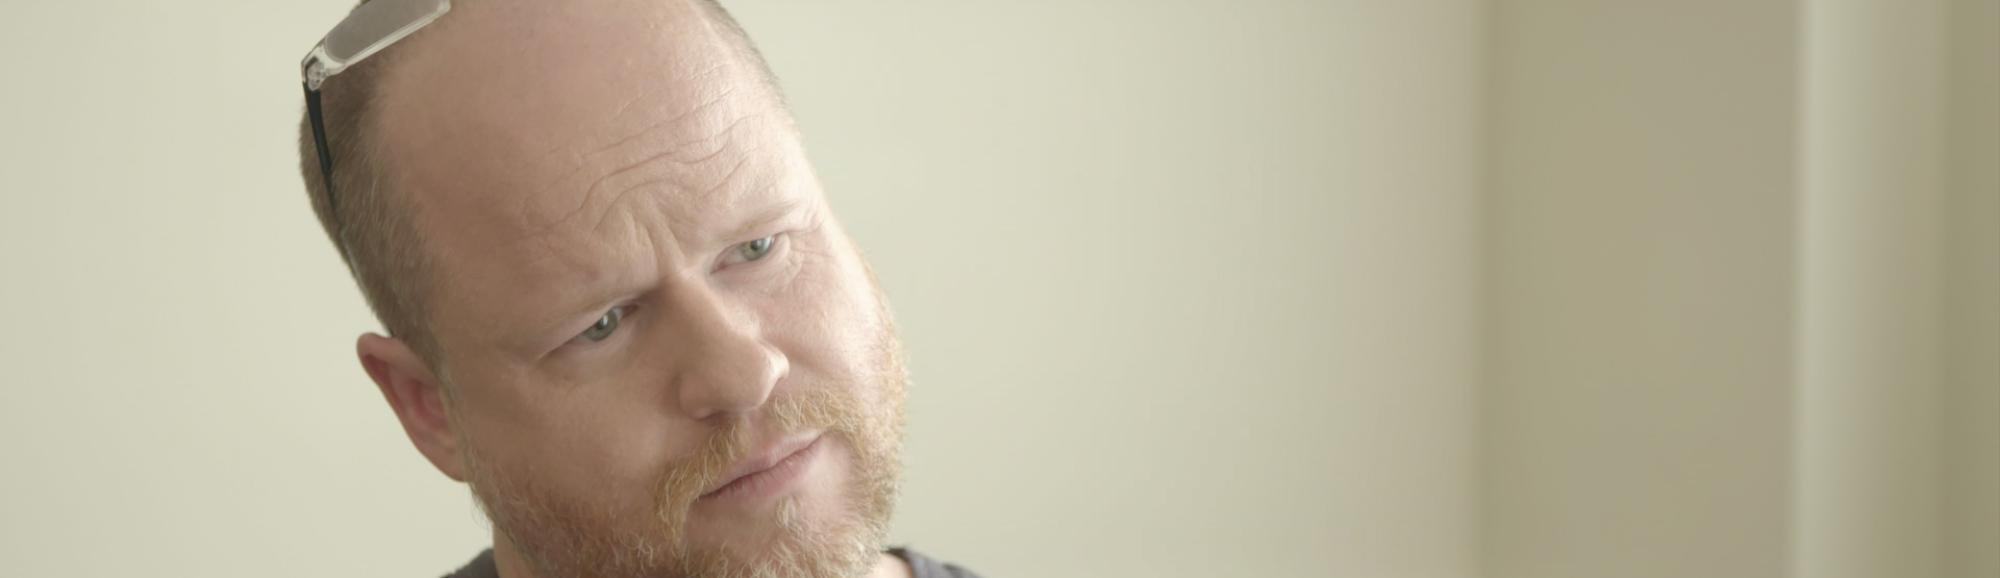 'Avengers' director Joss Whedon tells us why he's putting another political ad in your newsfeed